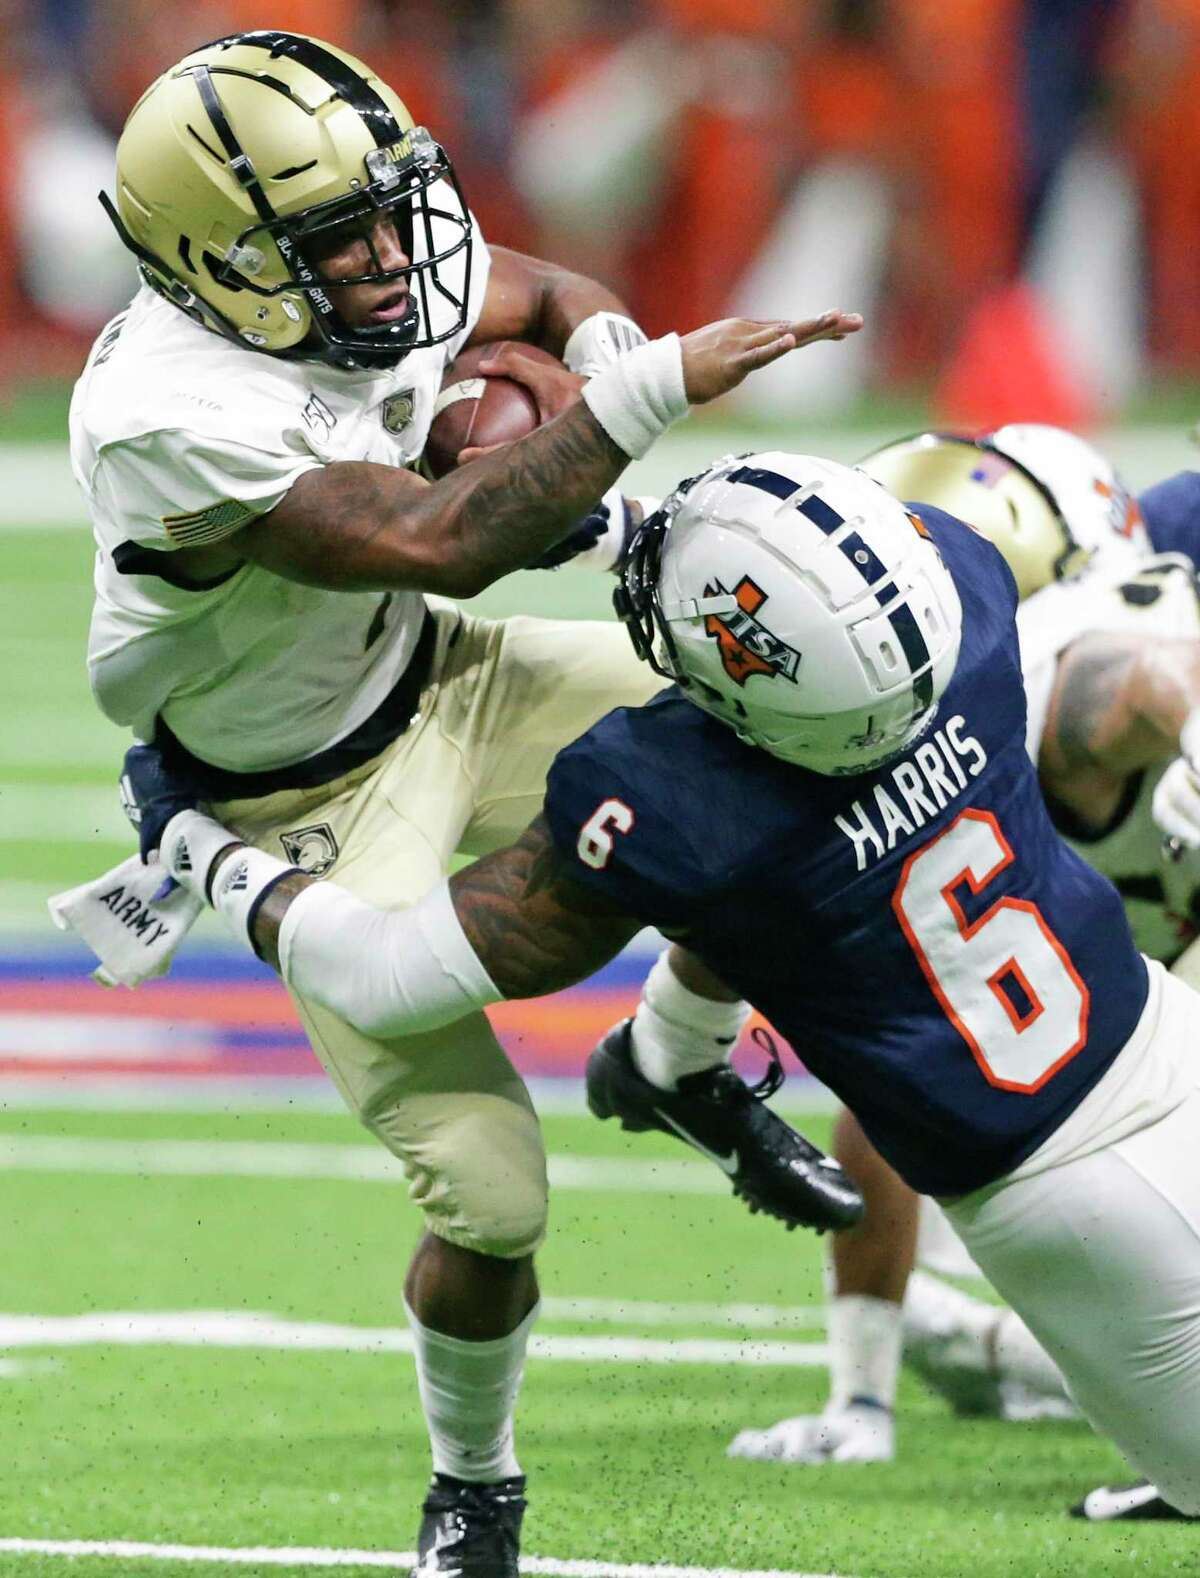 Army quarterback Jabari Laws tries to spin away from Runner tackler SaVion Harris as UTSA hosts Army at the Alamodome on Sept. 14, 2019.